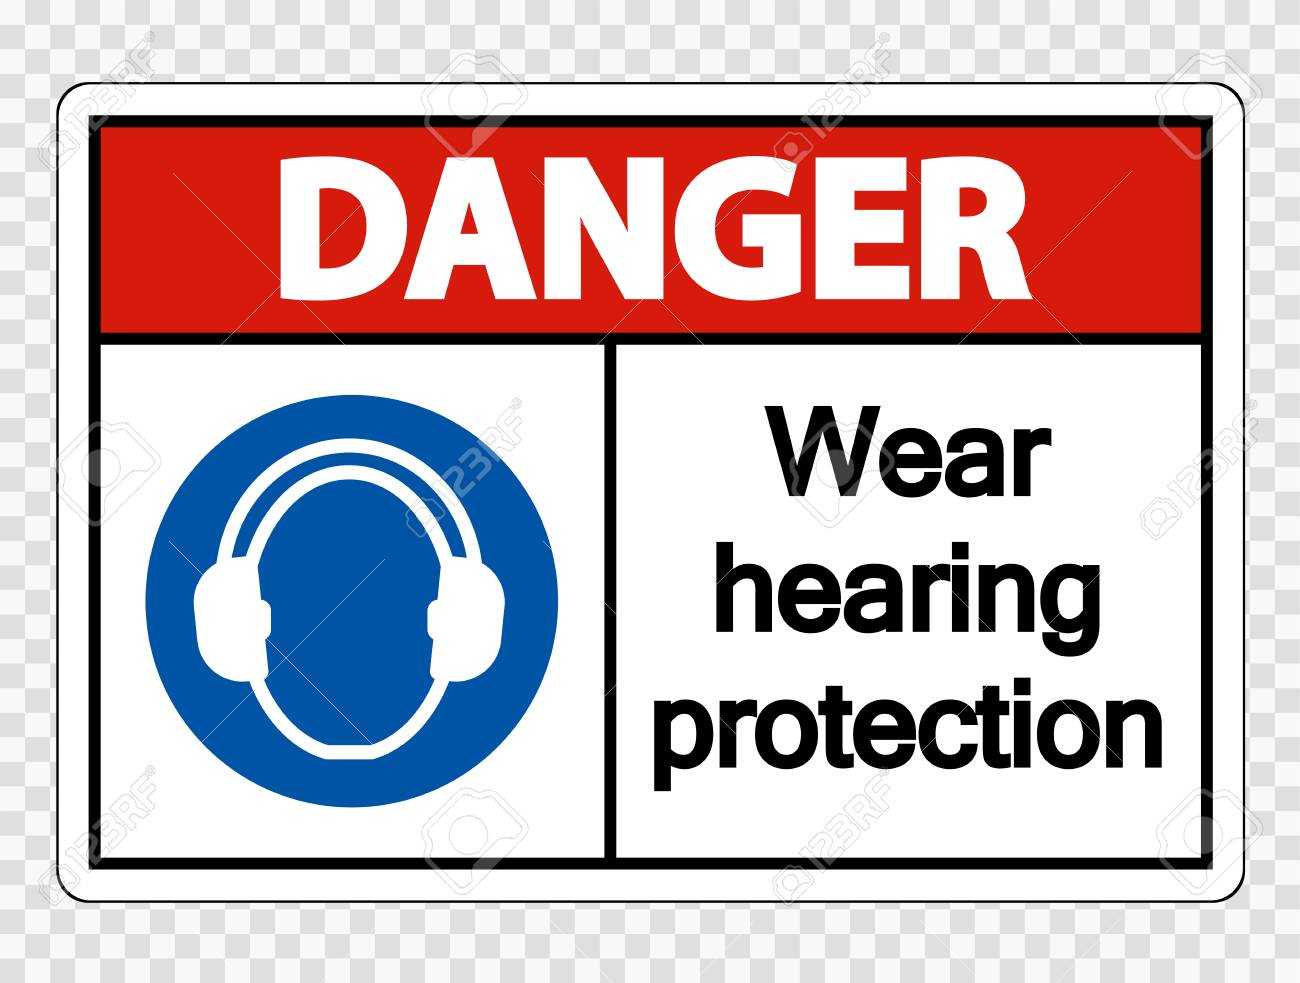 Danger Wear hearing protection on transparent background - 121127823